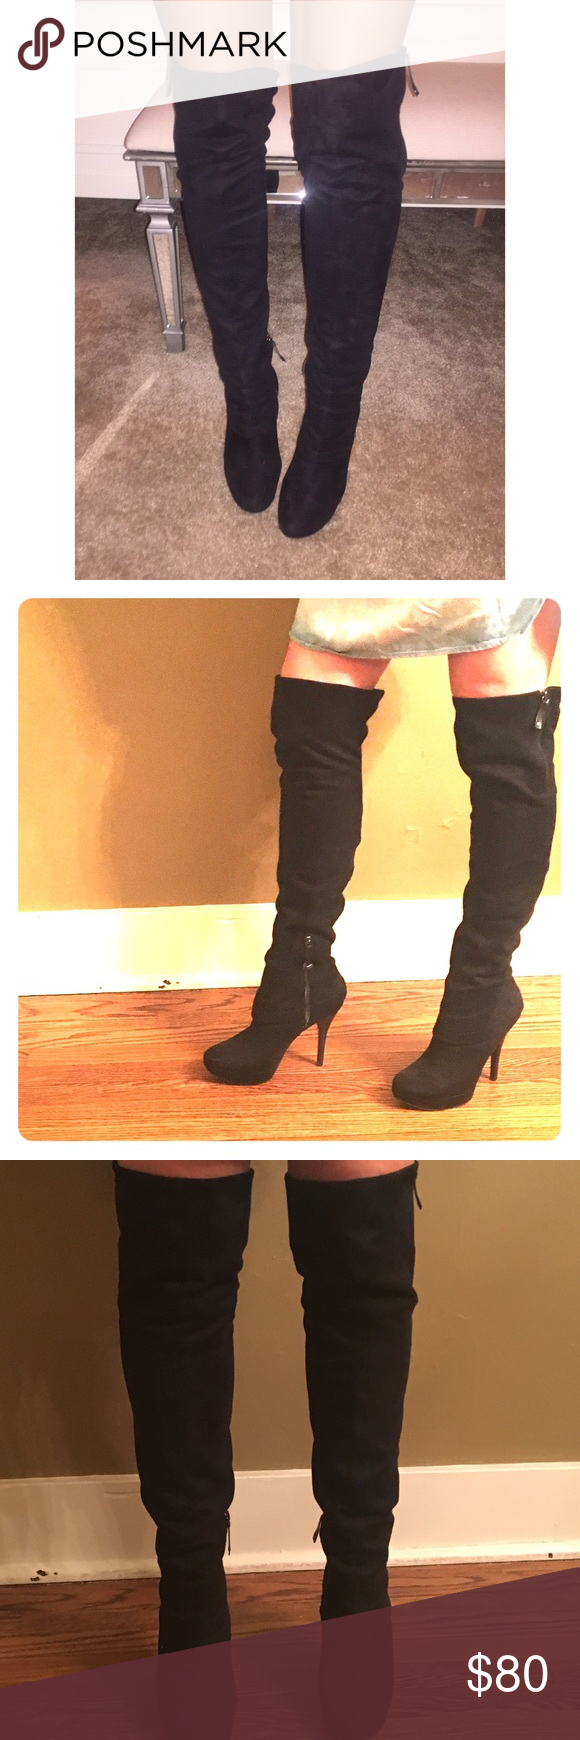 9737abeb128 Guess over the knee boots SEXY!!! Guess by Marciano thigh high over